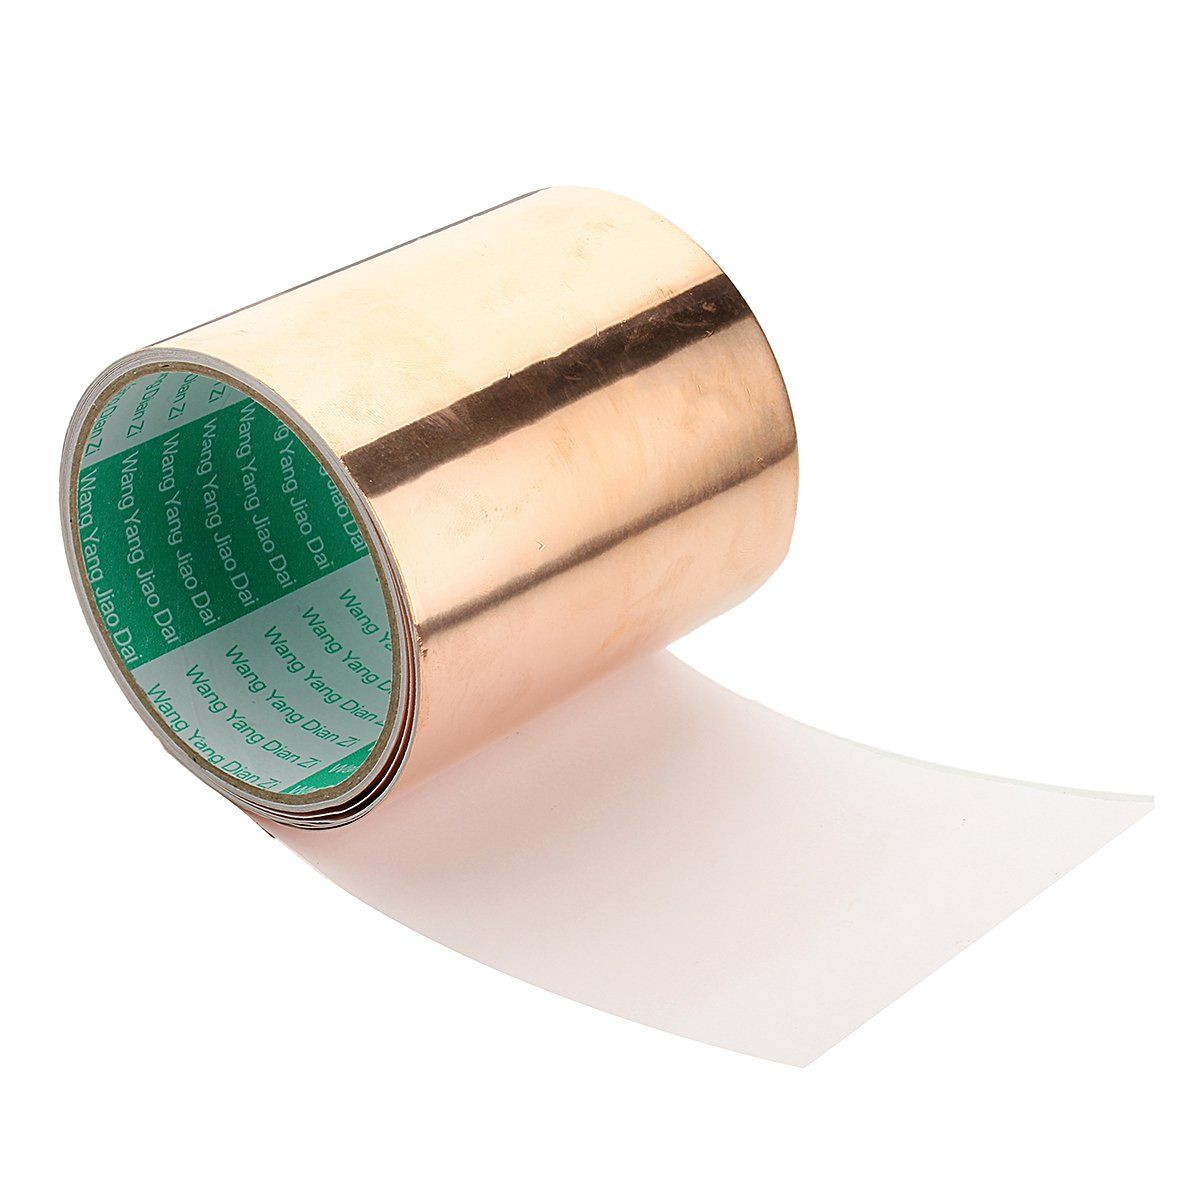 Copper Foil Tape 4 10cm X 10ft 3m 1 Roll Conductive Self Adhesive Shielding Https T Co Rpanlcd7ph Copper Foil Tape Copper Foil Adhesive